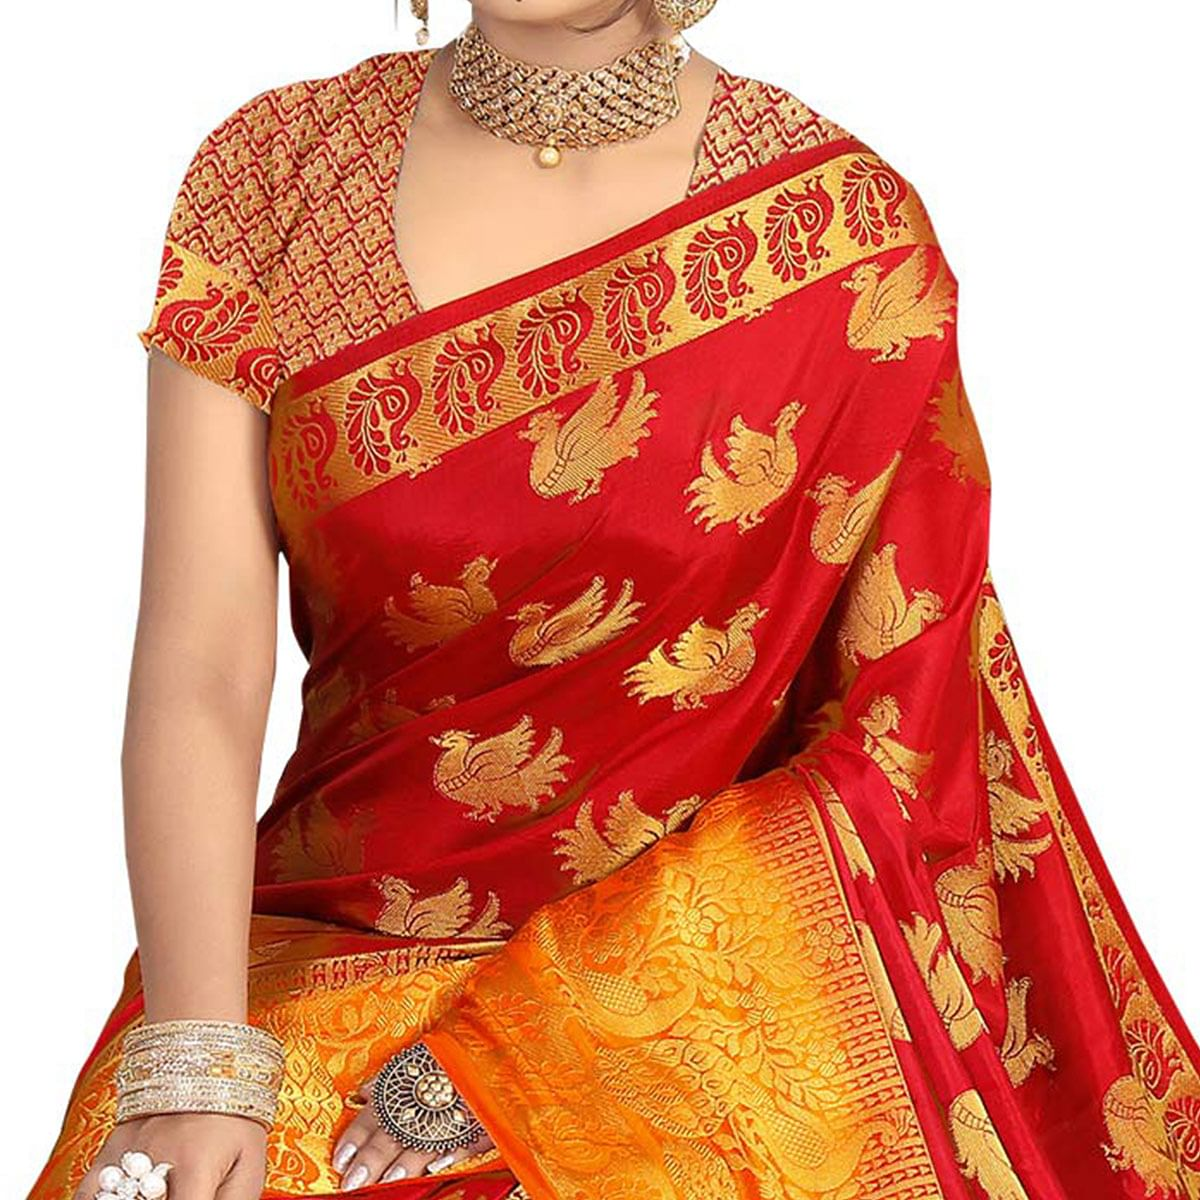 Captivating Orange - Red Colored Festive Wear Tussar Silk Saree